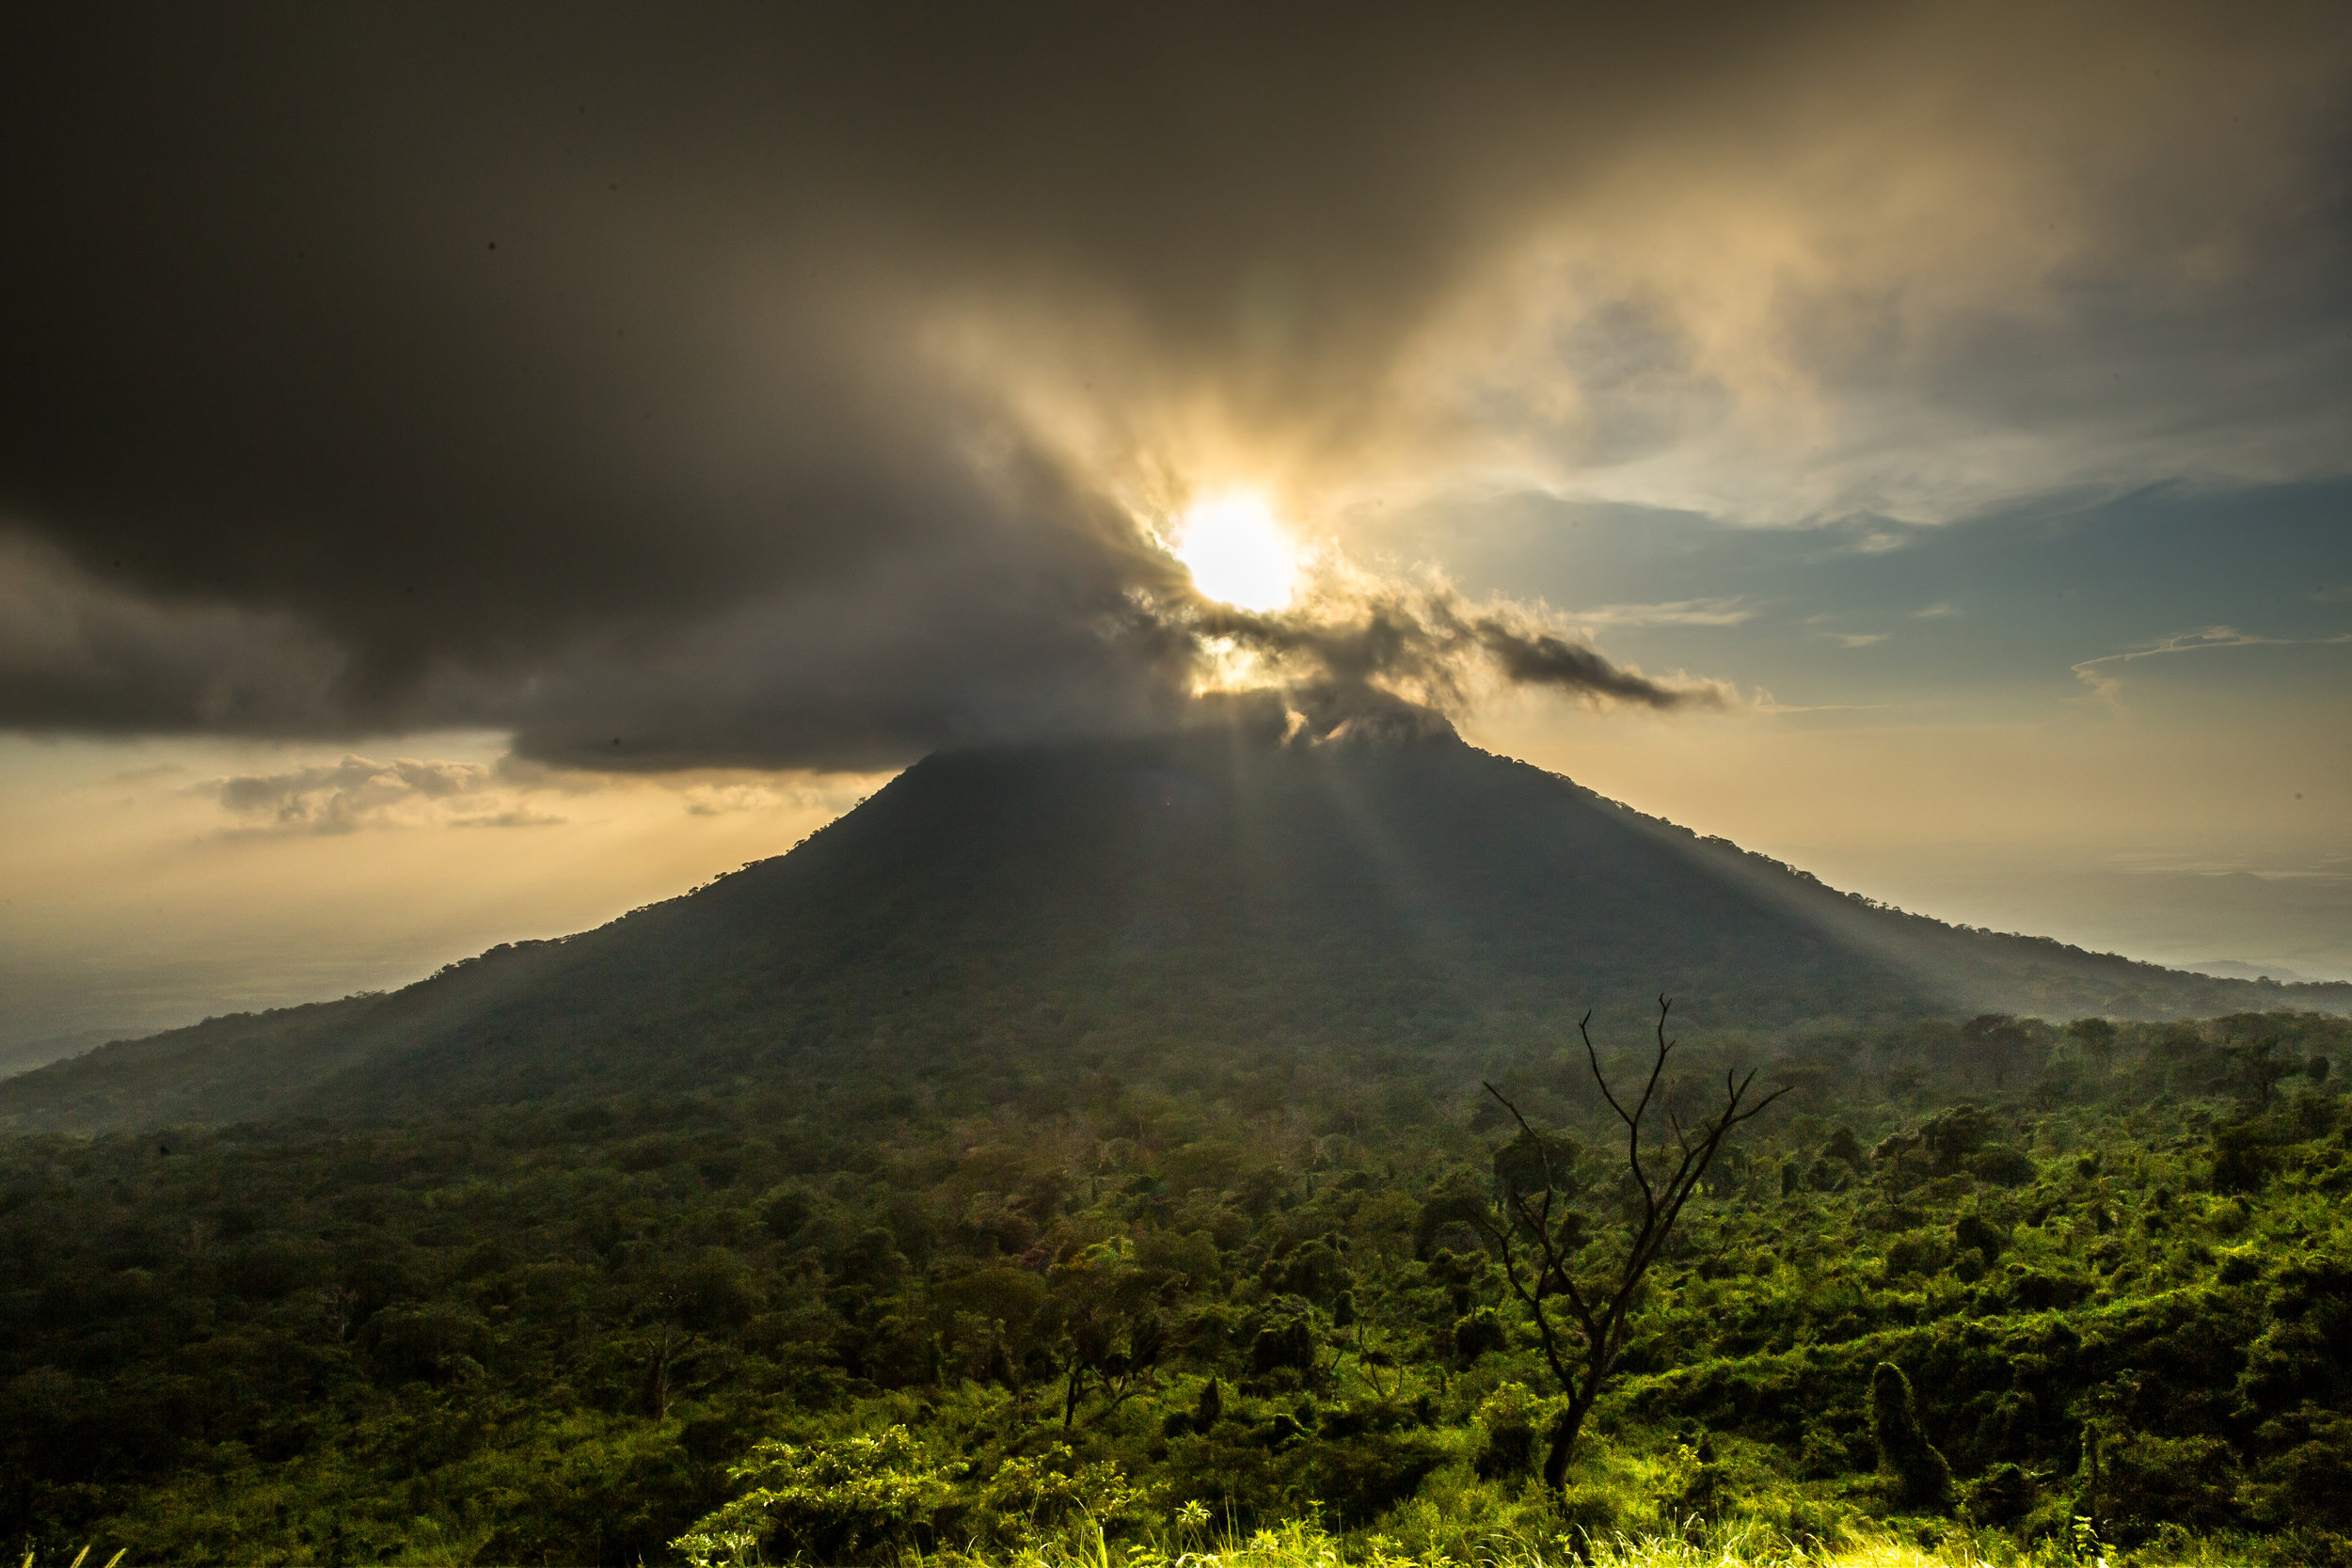 Sunset at Volcan Chonco